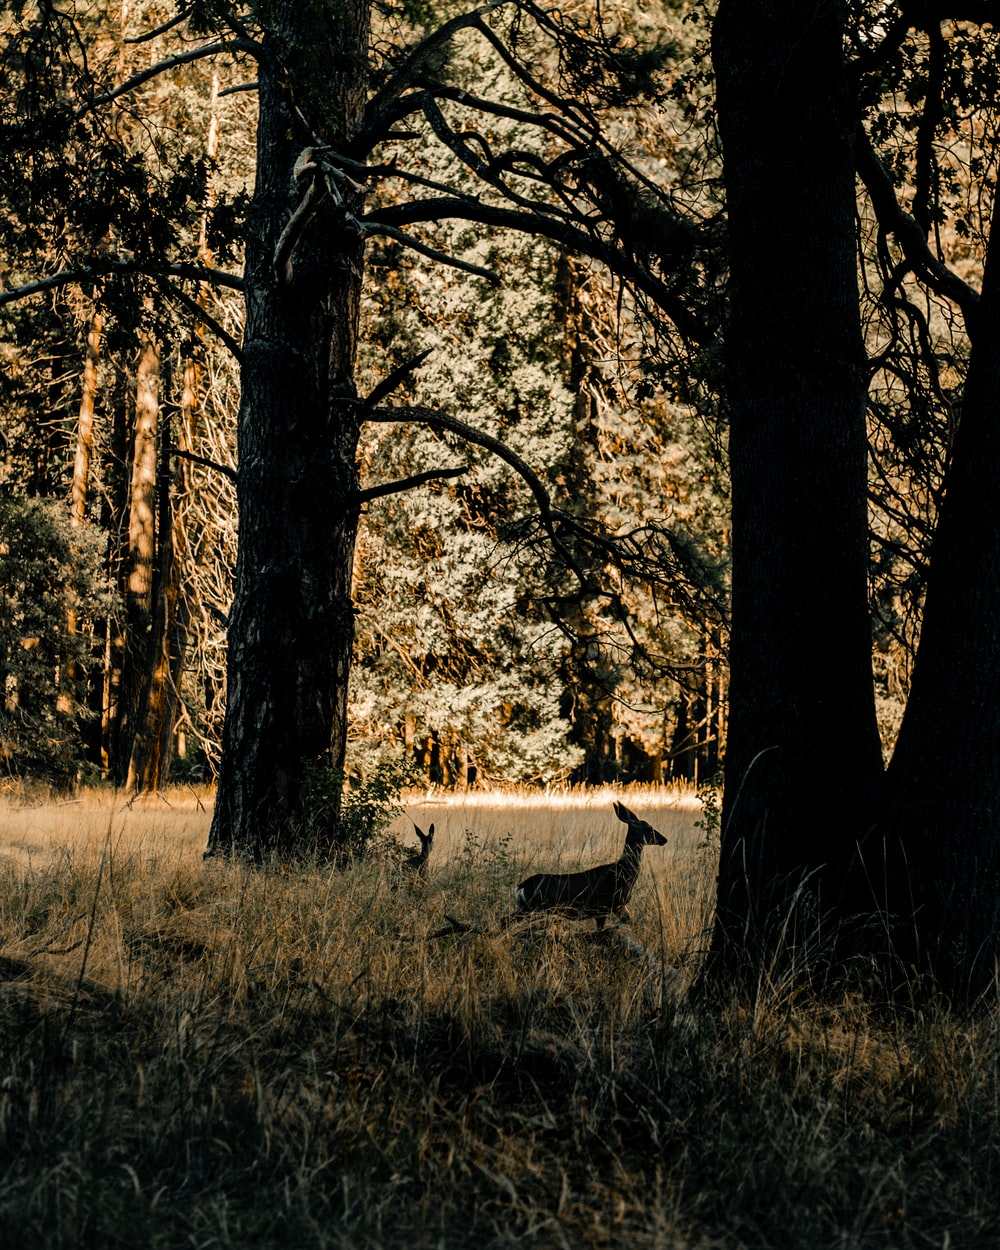 brown and white deer on brown grass field during daytime